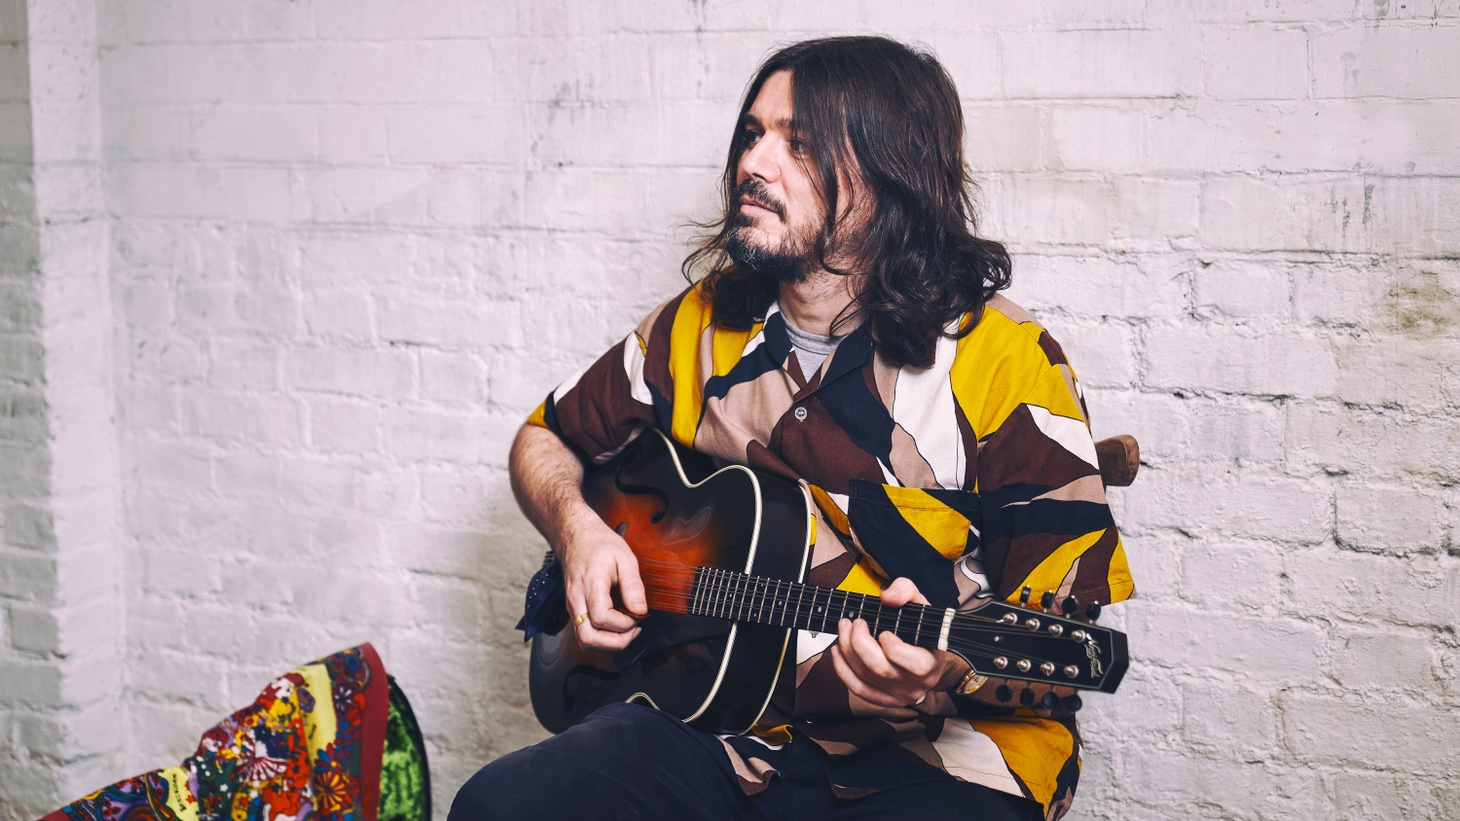 """Stephen Wilkinson aka Bibio returns to the path of structured songwriting with his album   Ribbons  . Organic and tinged with folkloric ease, the """"Art of Living"""" pulls inspiration from time spent in the British countryside."""